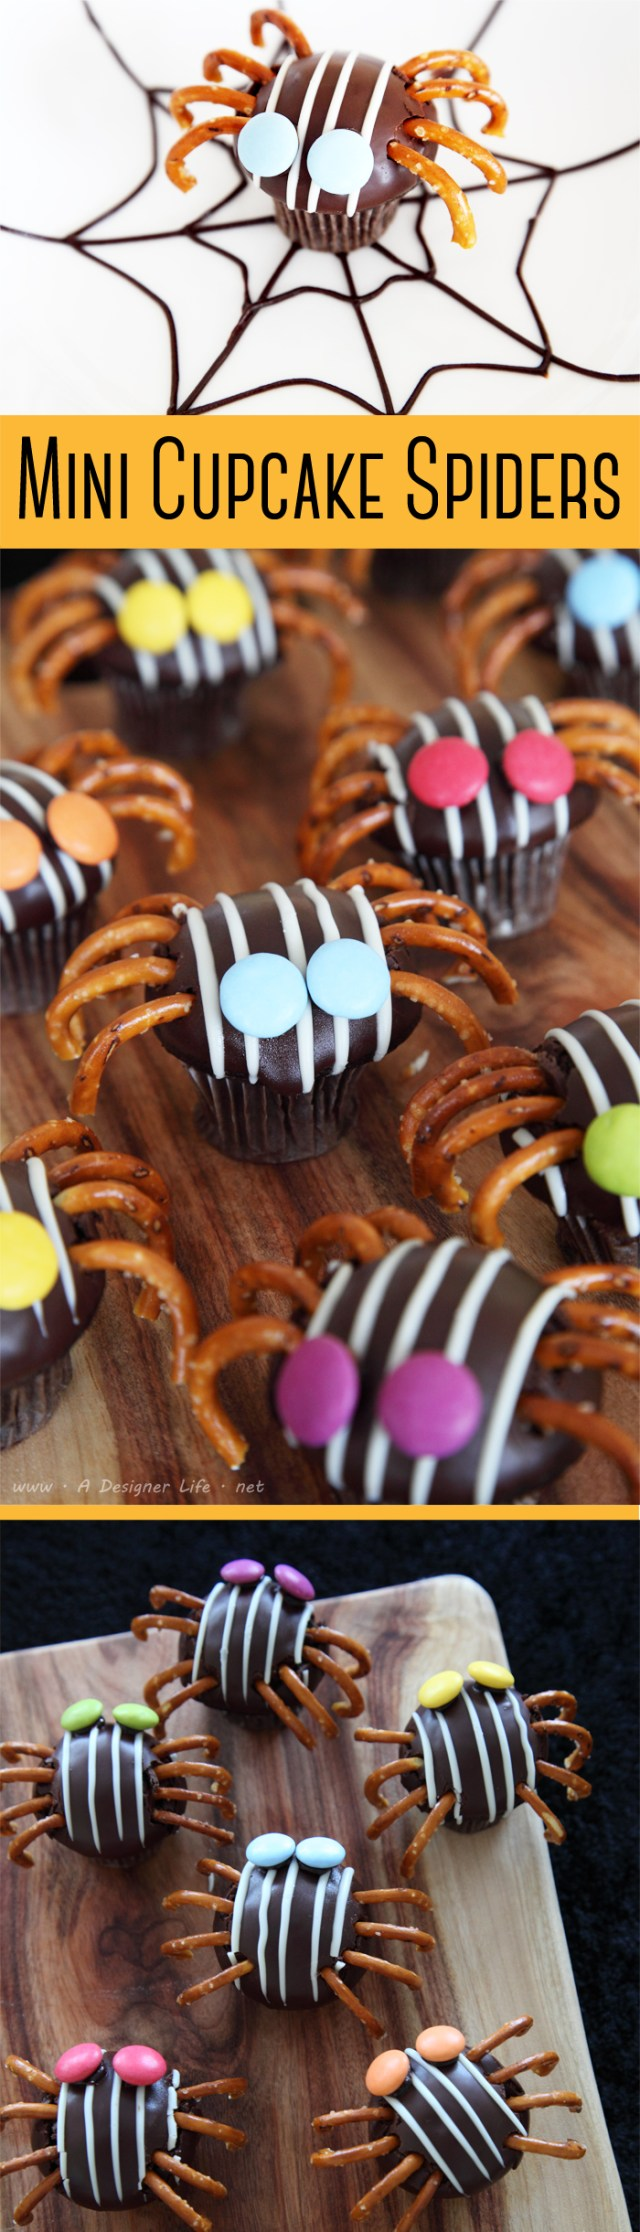 Mini Cupcake Spiders with Pretzel Legs | 5 Easy Halloween Food Ideas